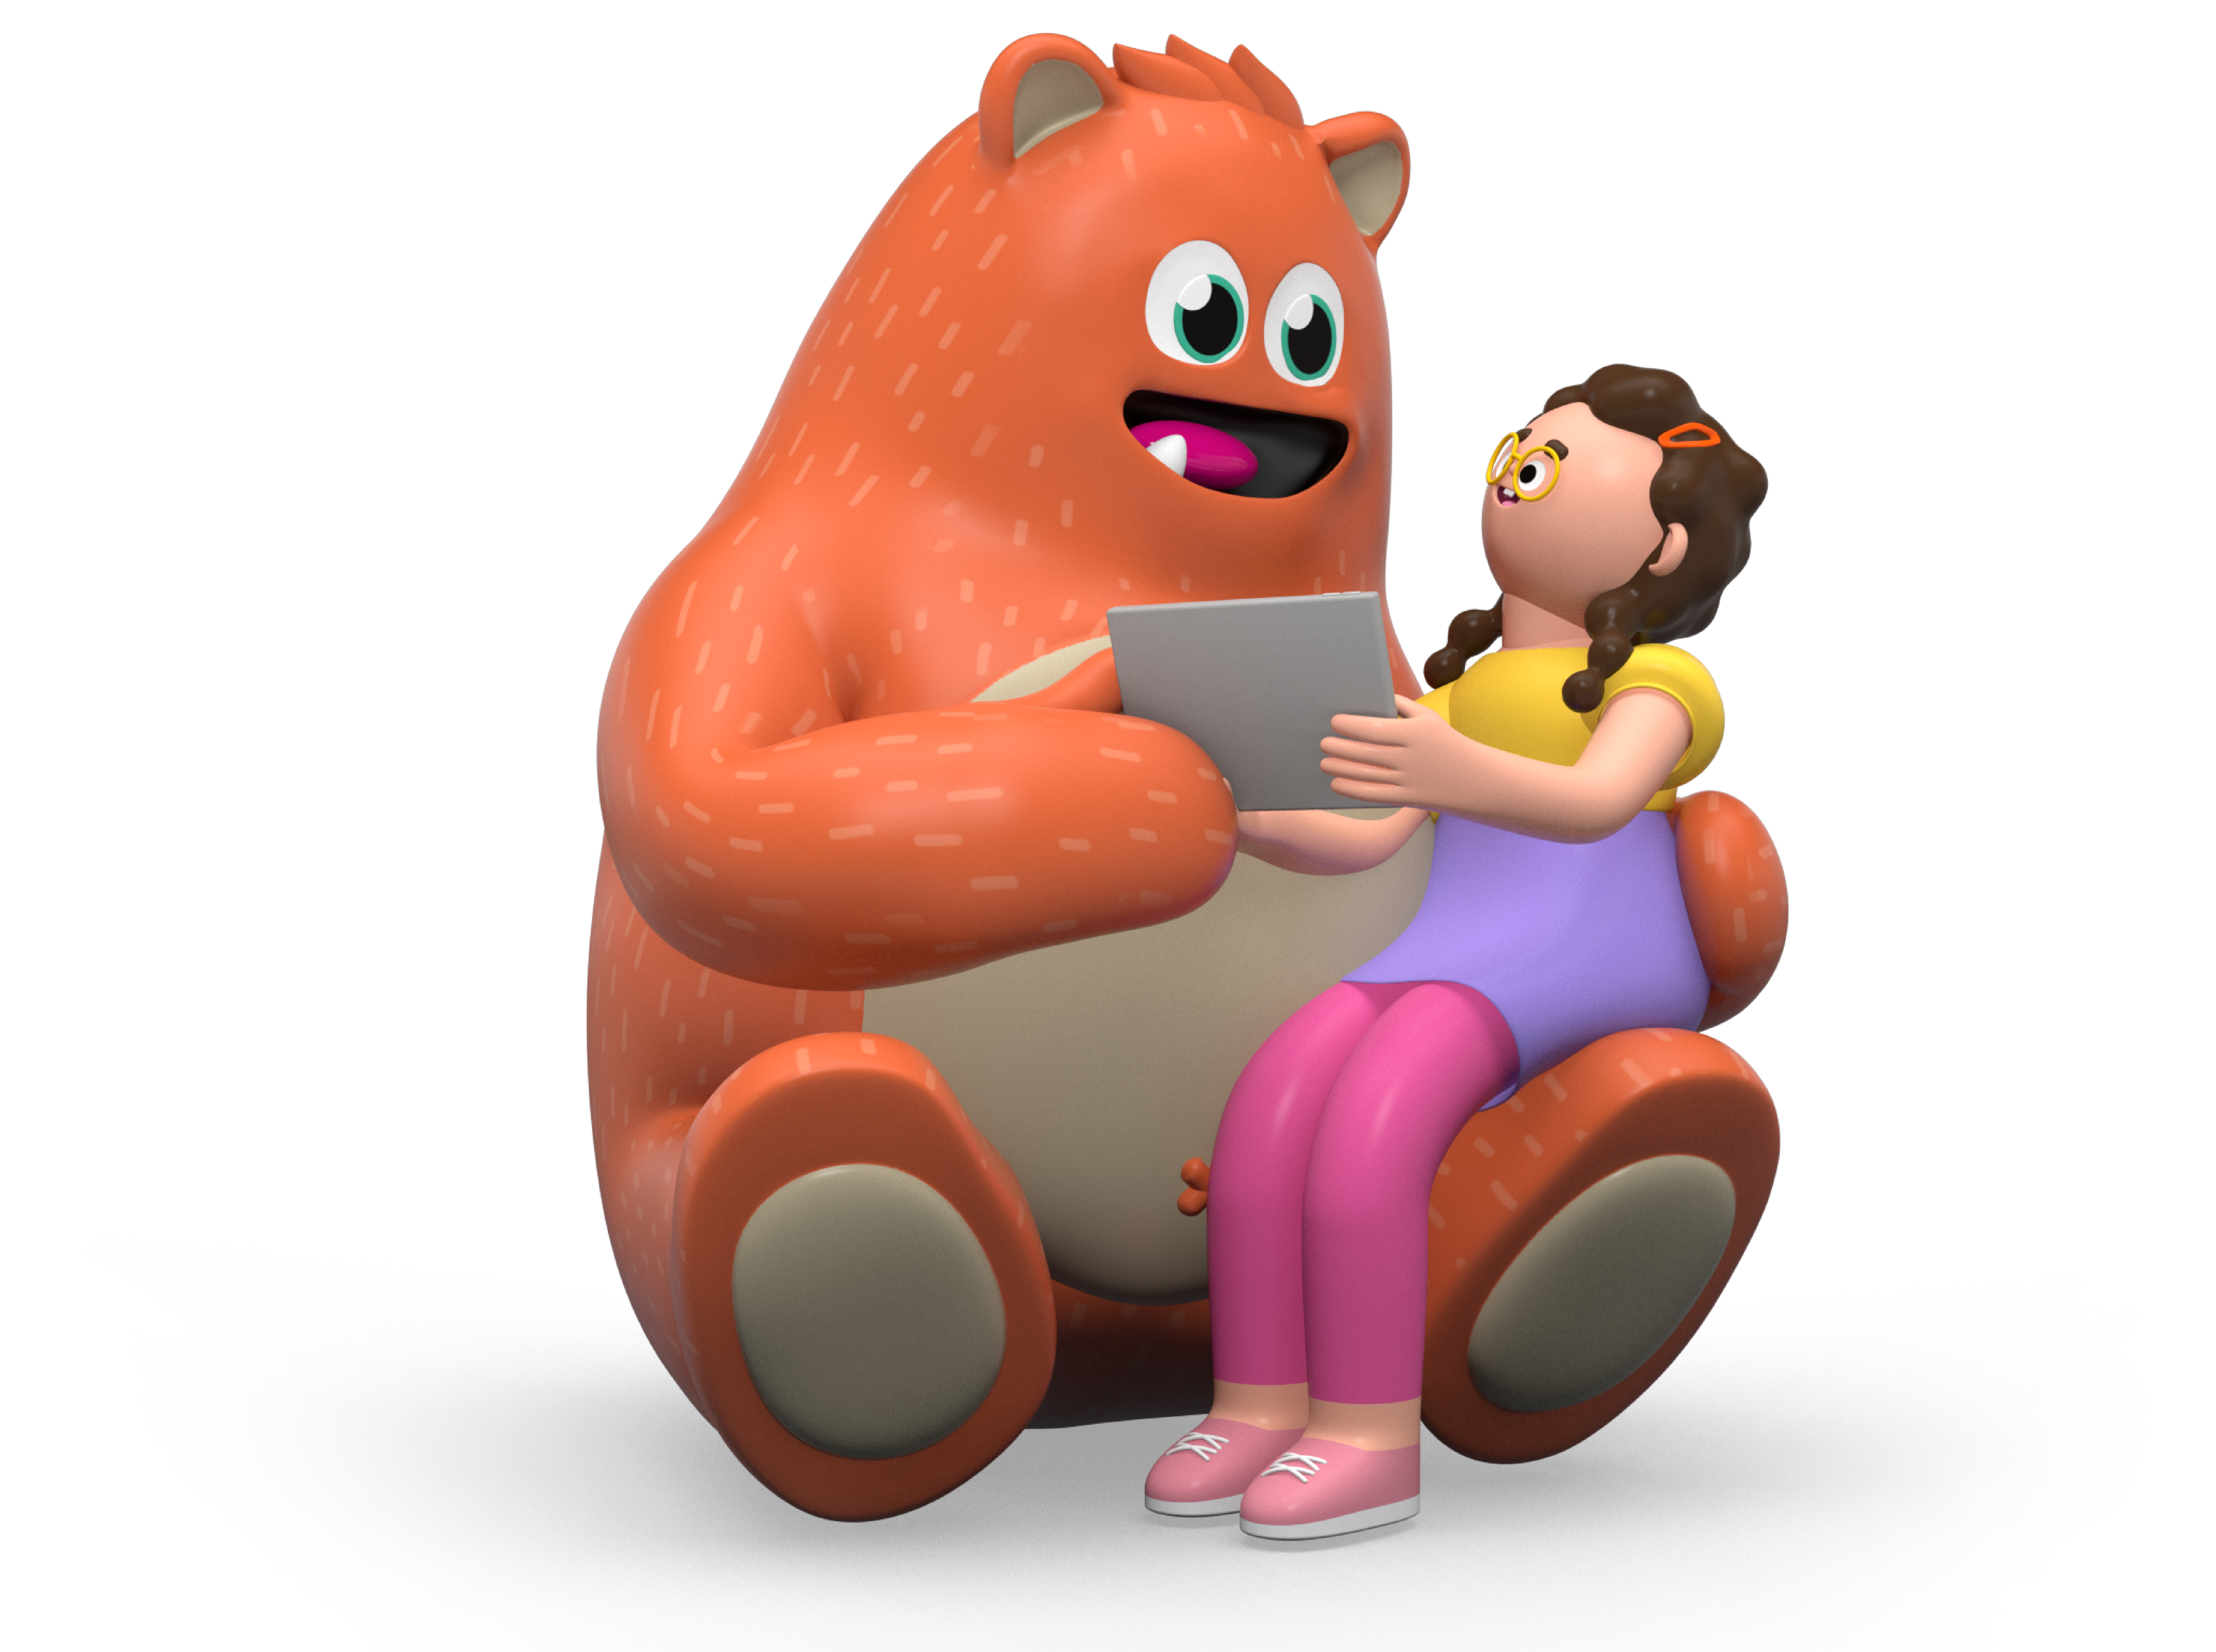 Illustration of Prodigy's mascot, Ed, helping a young girl with her homework.